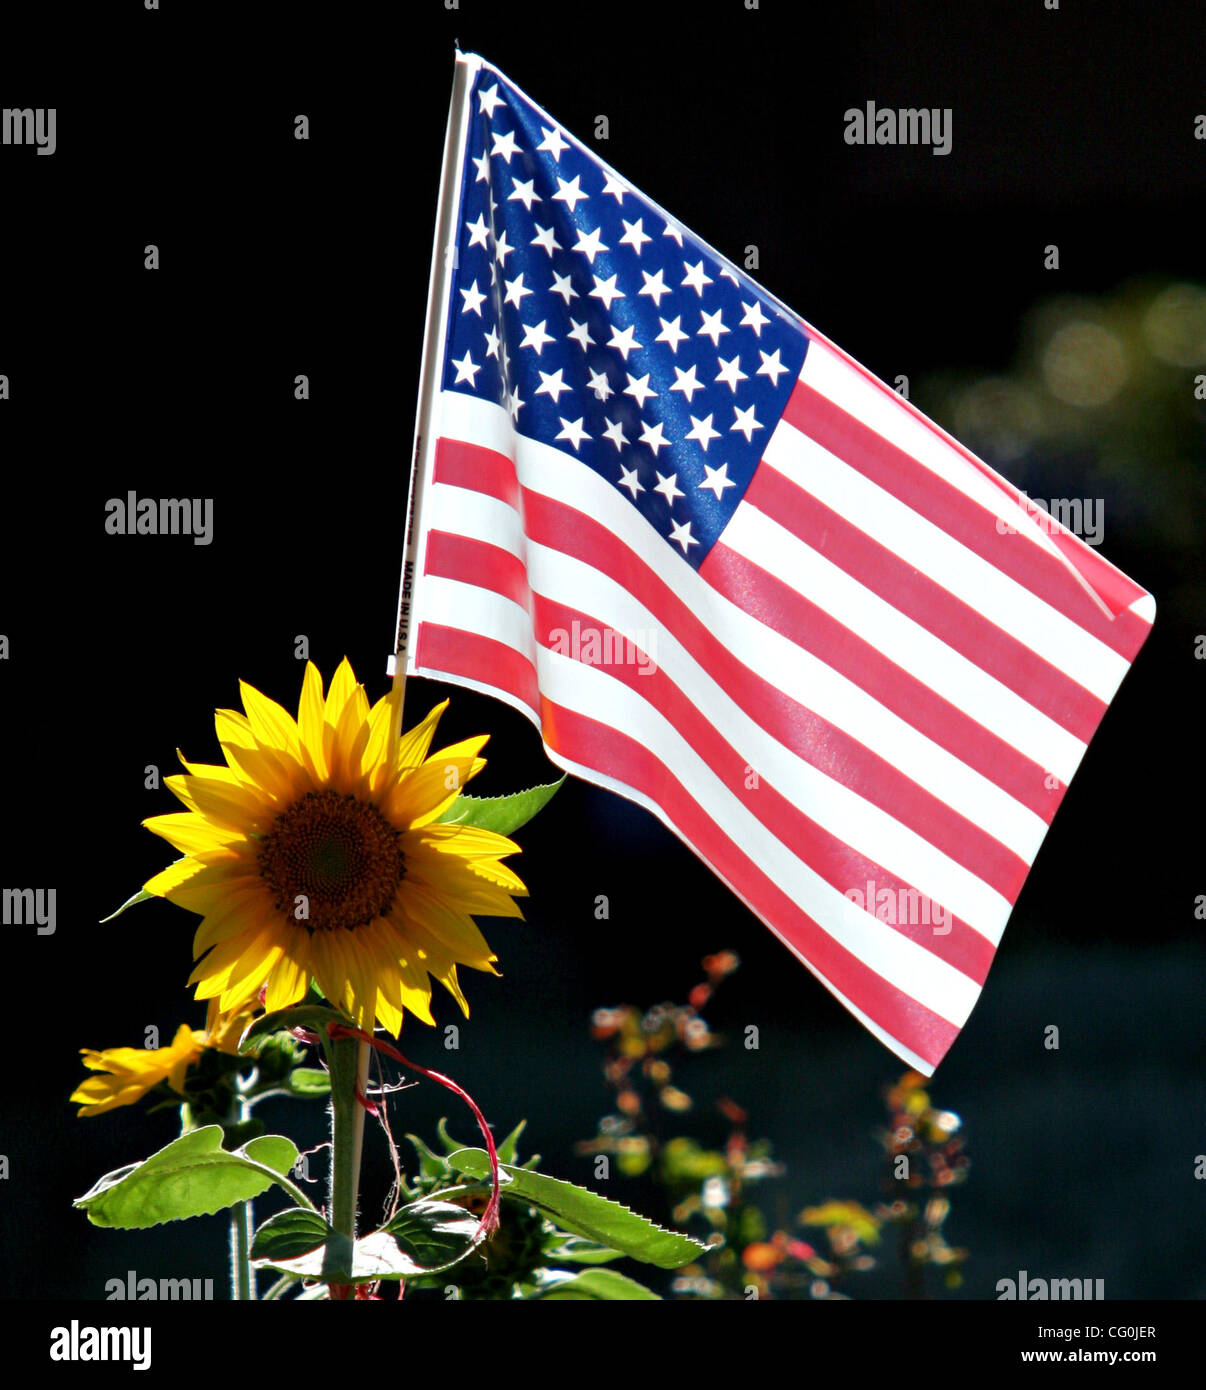 An American flag and sunflower are seen along Woodroe Avenue on Tuesday, July 3, 2007, in the unincorporated Fairview - Stock Image